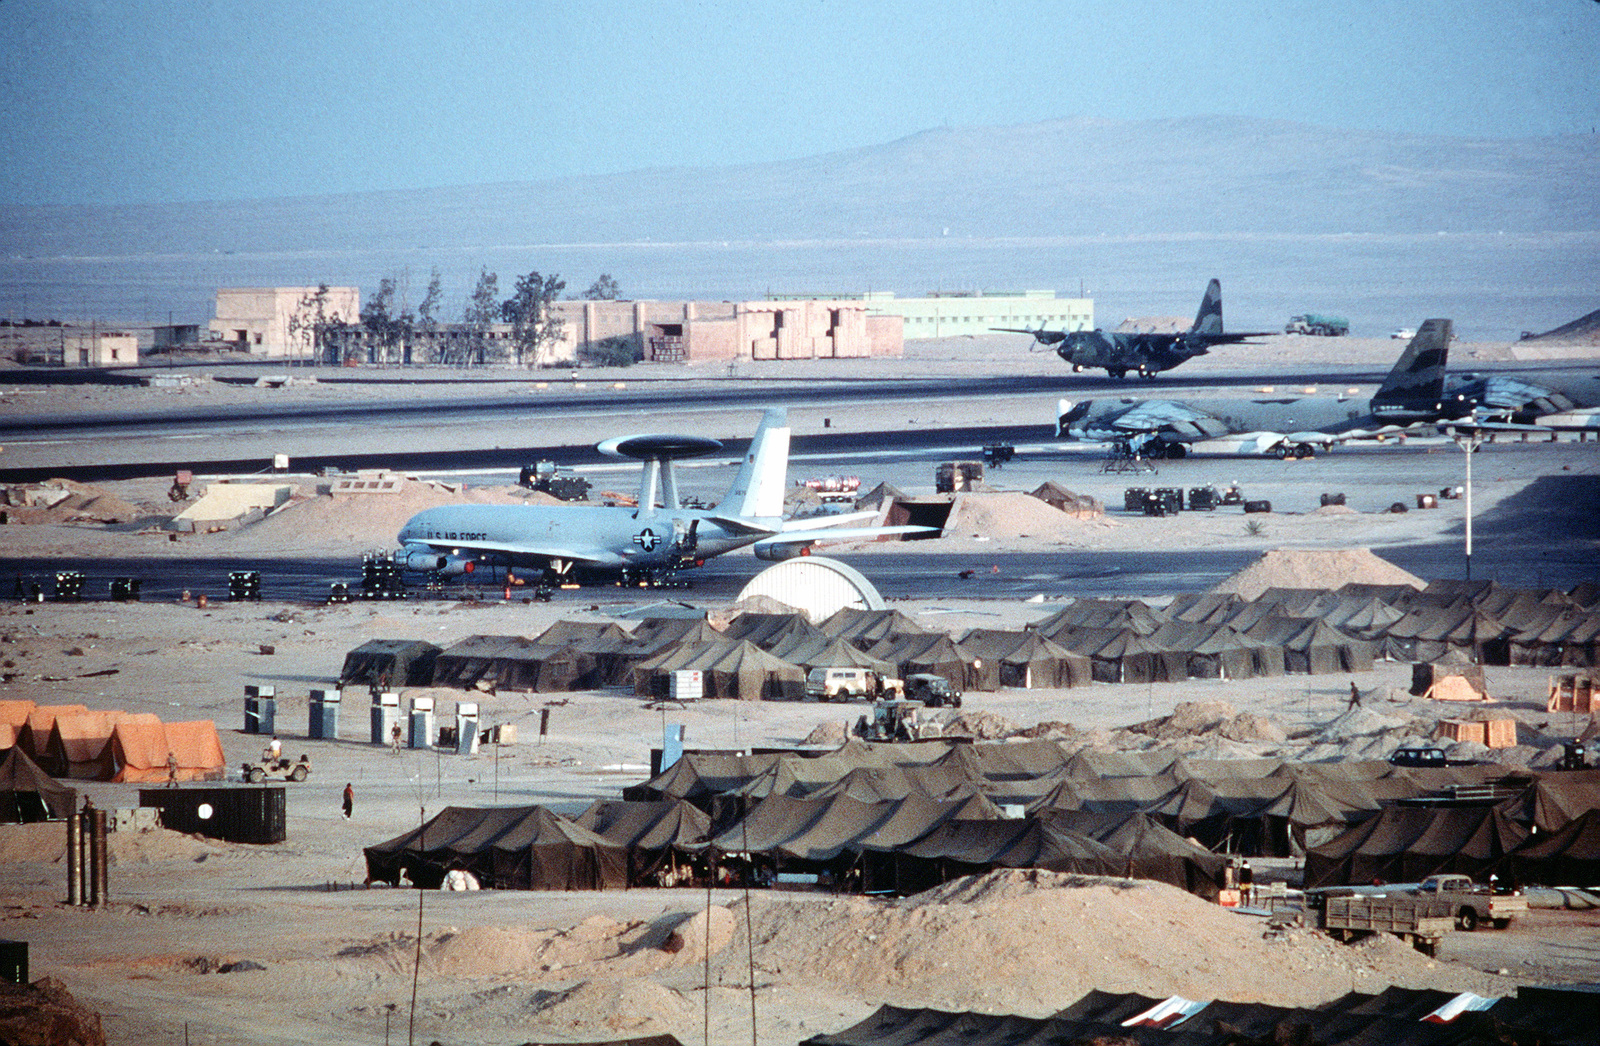 An Air Force C-130 Hercules aircraft lands at an aircraft staging area known as Cairo West during the multinational exercise Bright Star '83. An E-3A Sentry airborne warning and control system (AVACS) aircraft and a B-52 Stratofortress are being serviced in the foreground